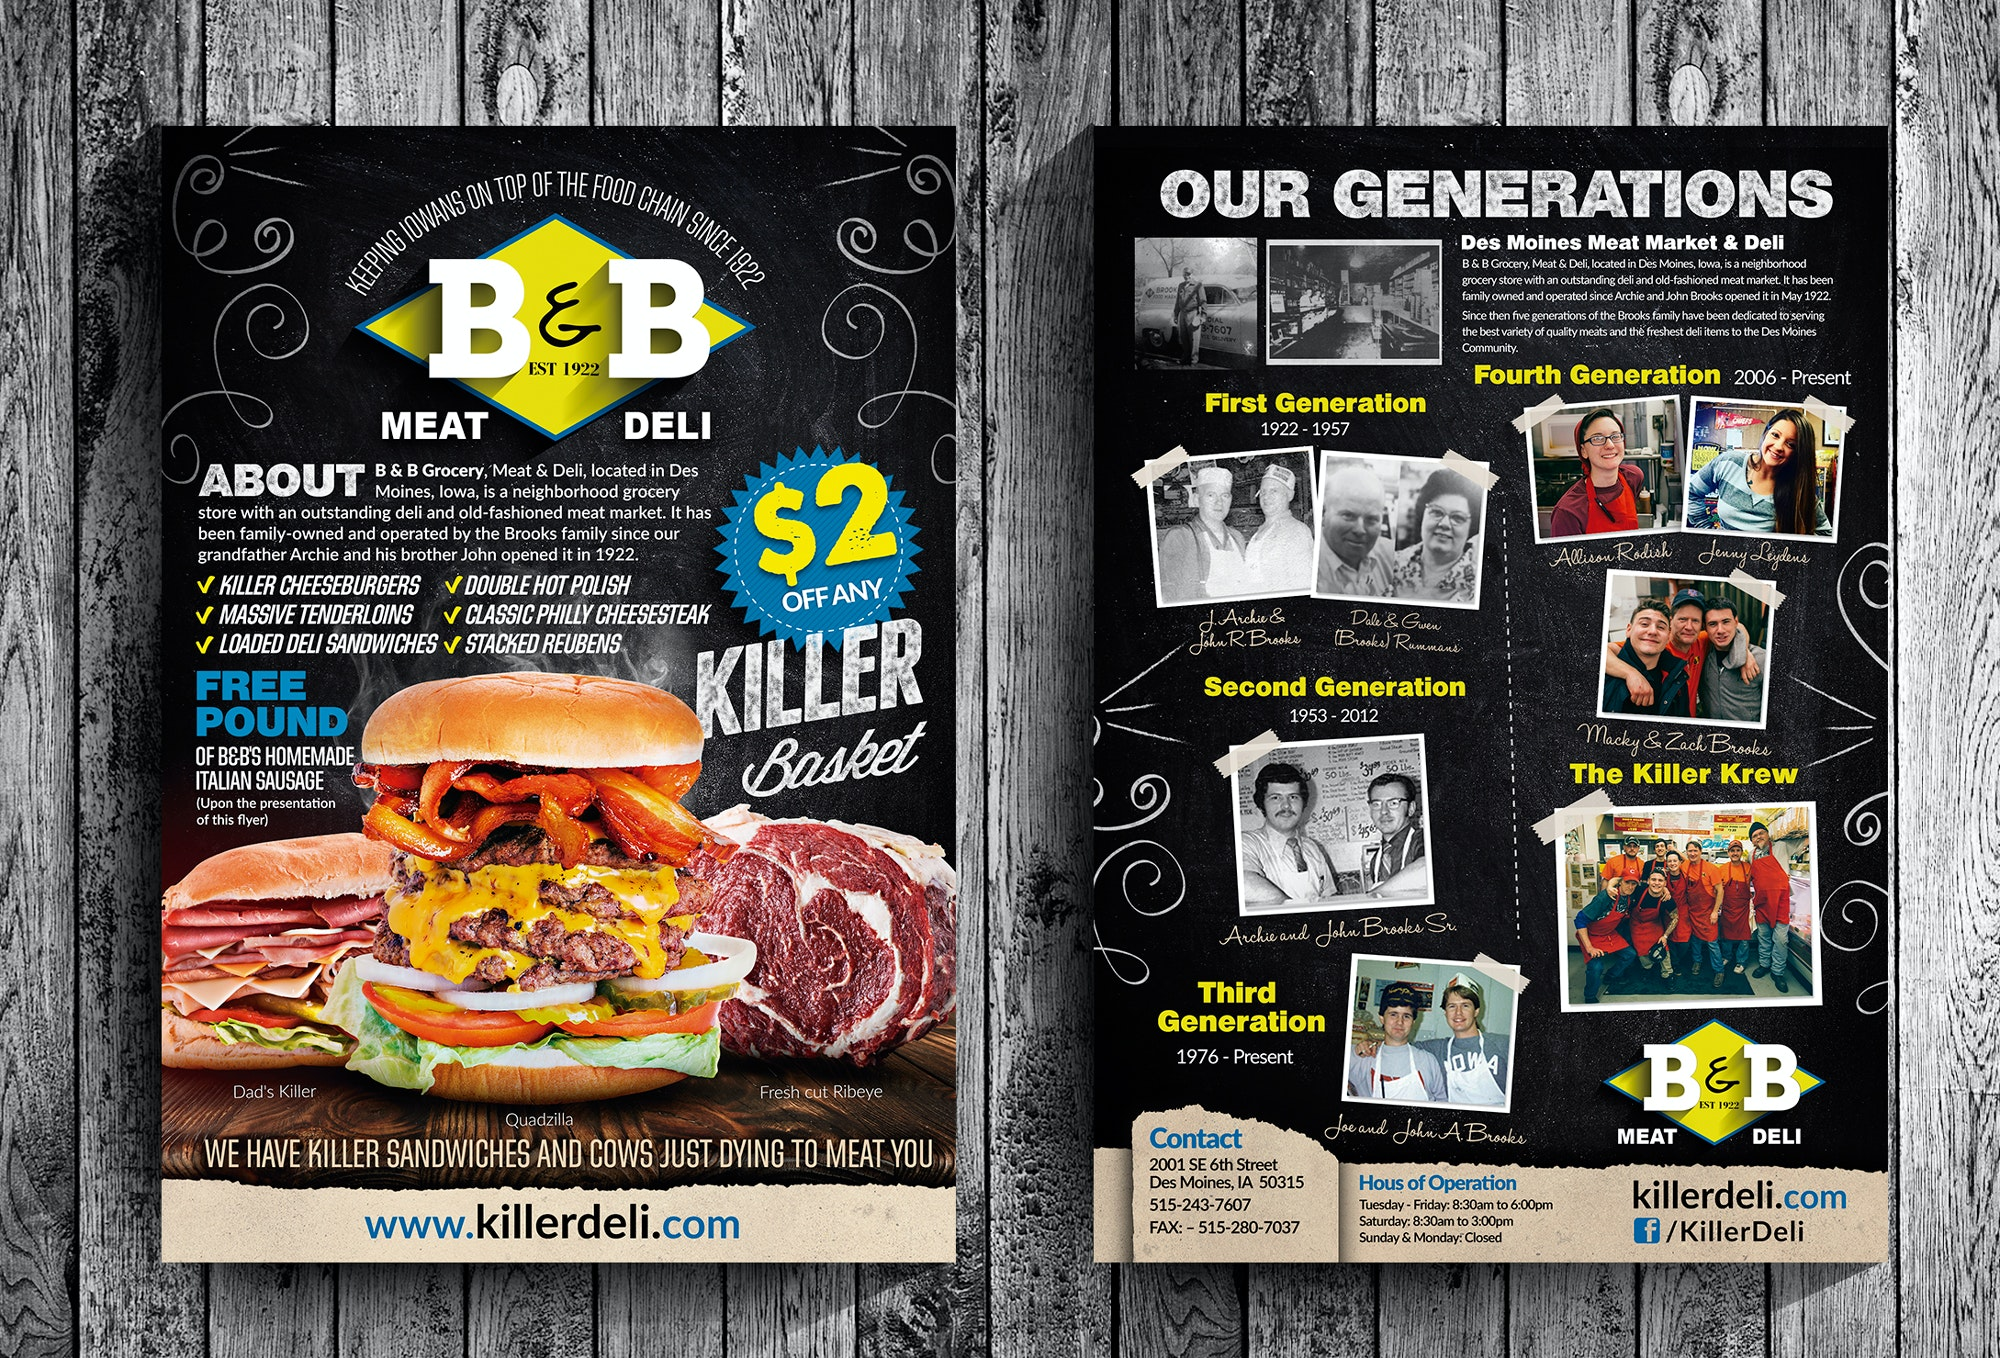 Flyer for a meat deli